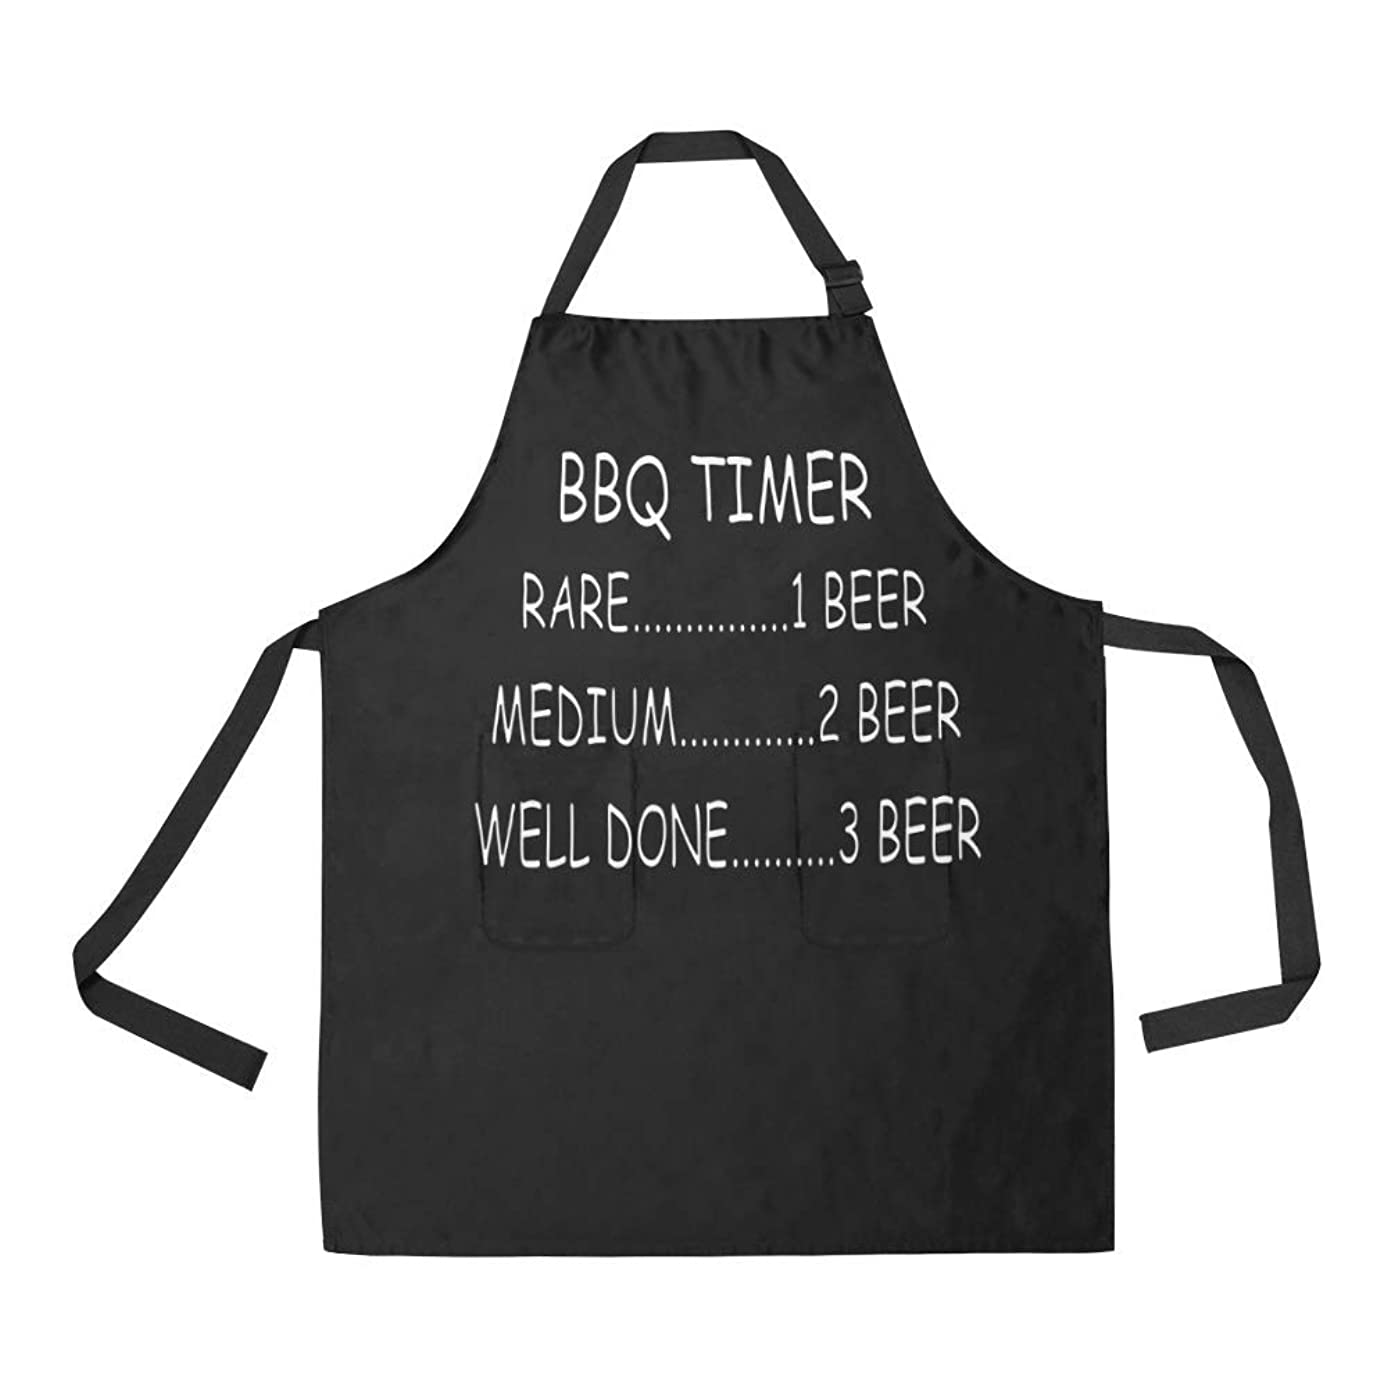 INTERESTPRINT Funny BBQ All Over Print Adjustable Bib Apron with Pockets - Funny BBQ Timer Barbecue for Women Men, Large Size